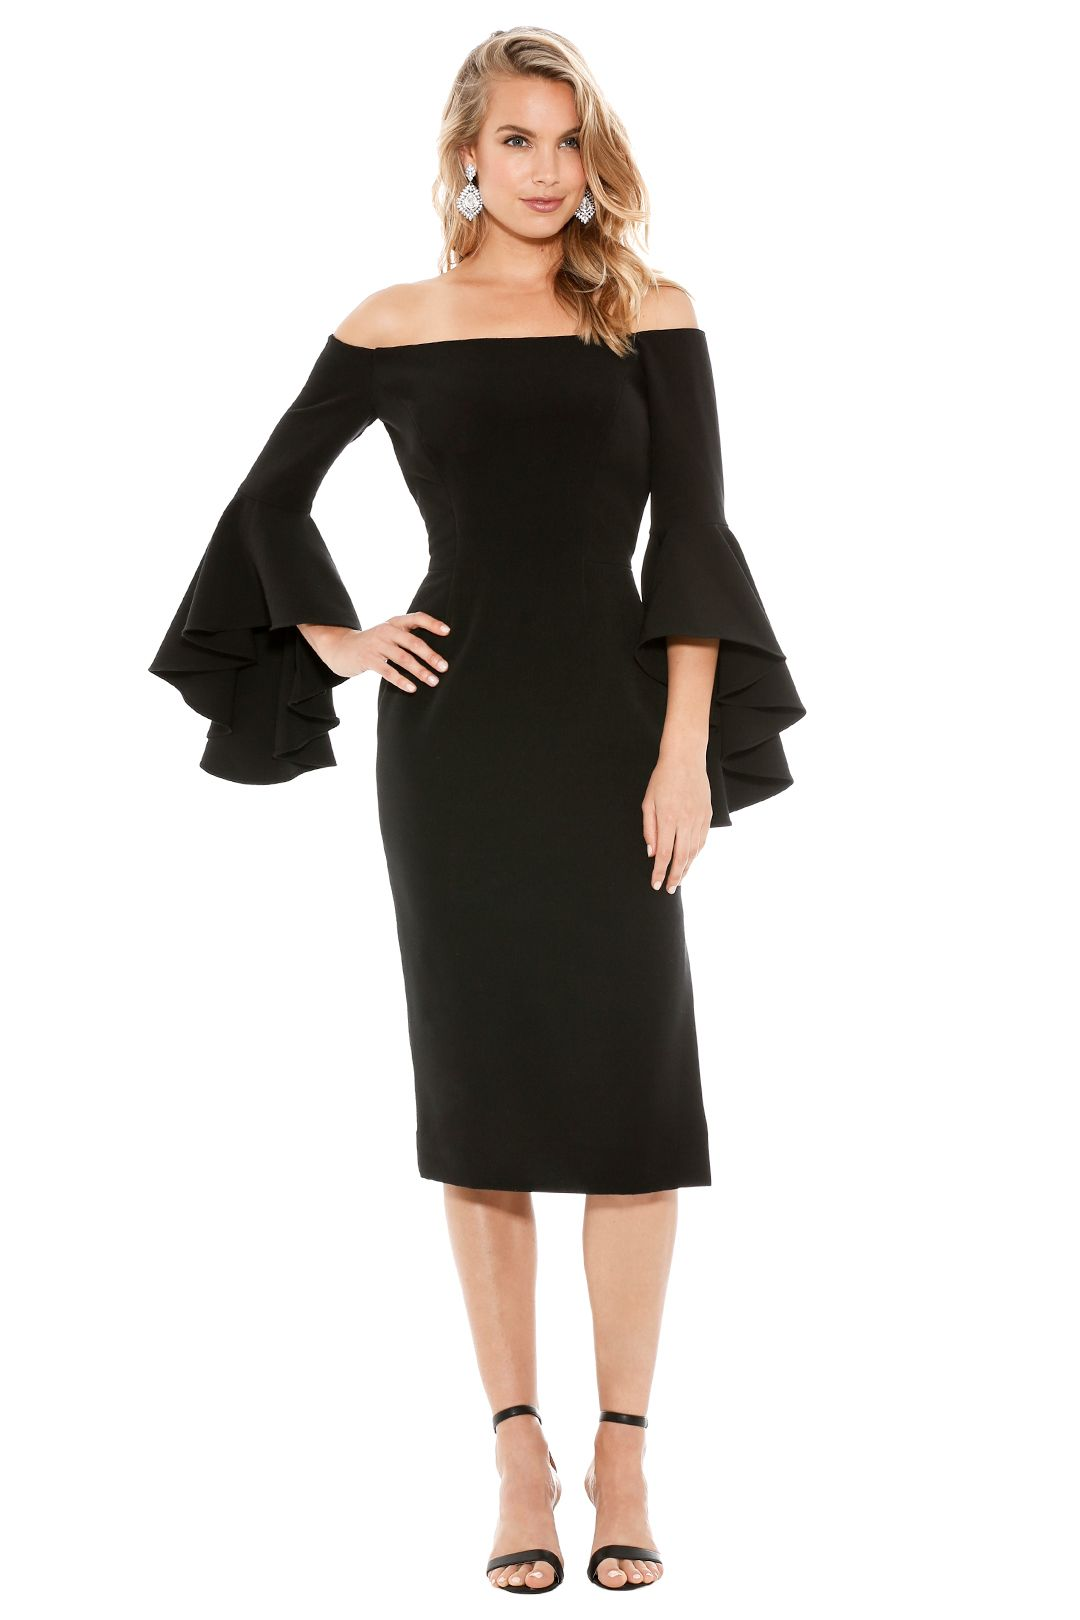 Milly - Cady Selena Slit Dress - Front - Black